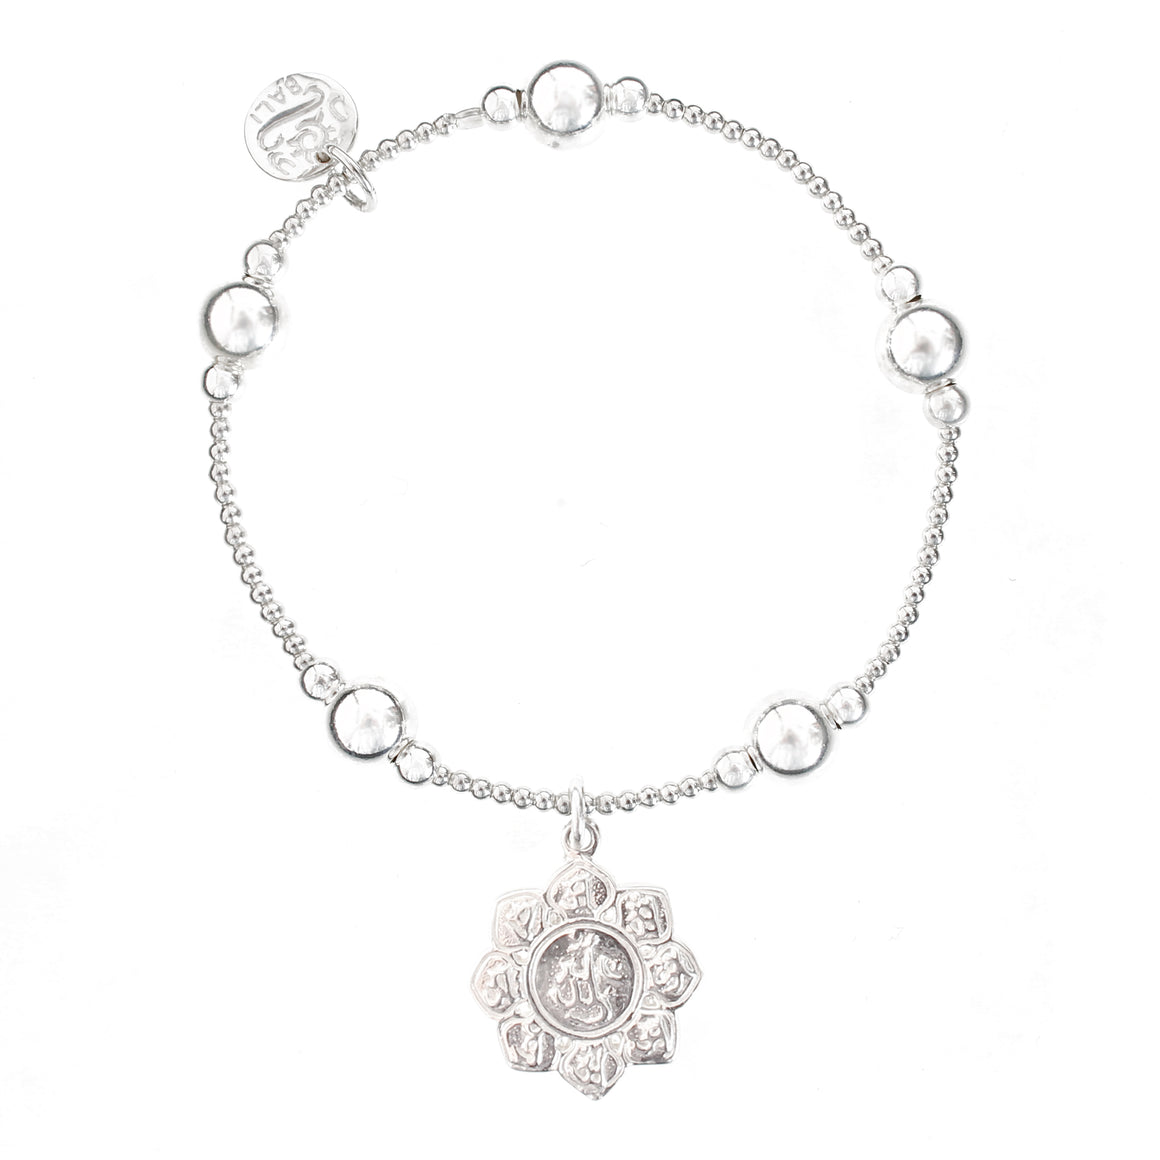 Lotus Flower Bali Ball Bracelet - good charma